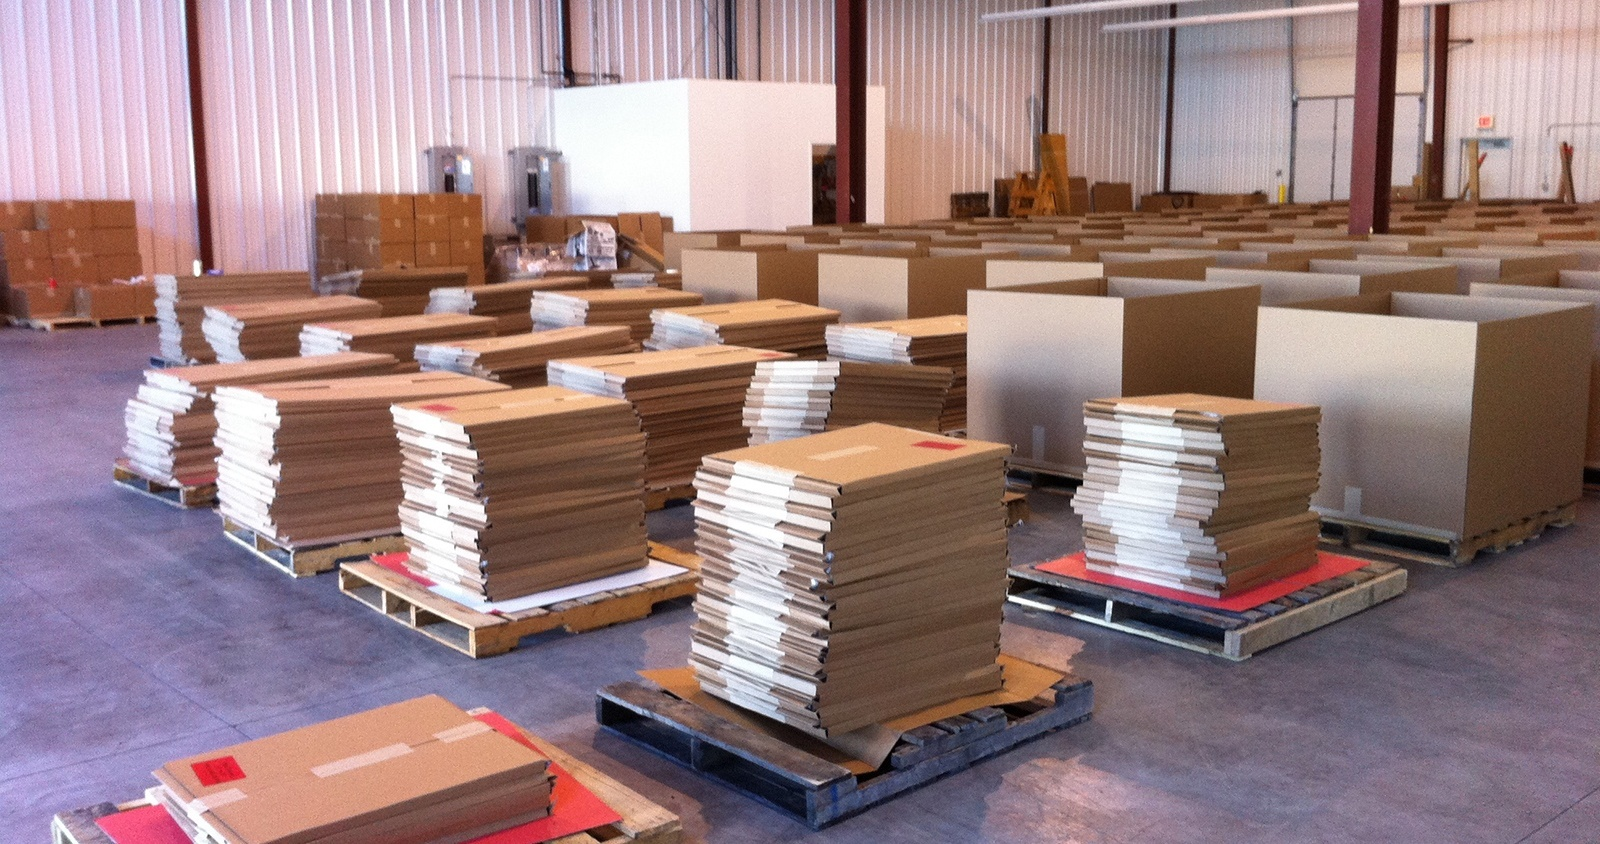 rows of pallets with boxes stacked on top of them